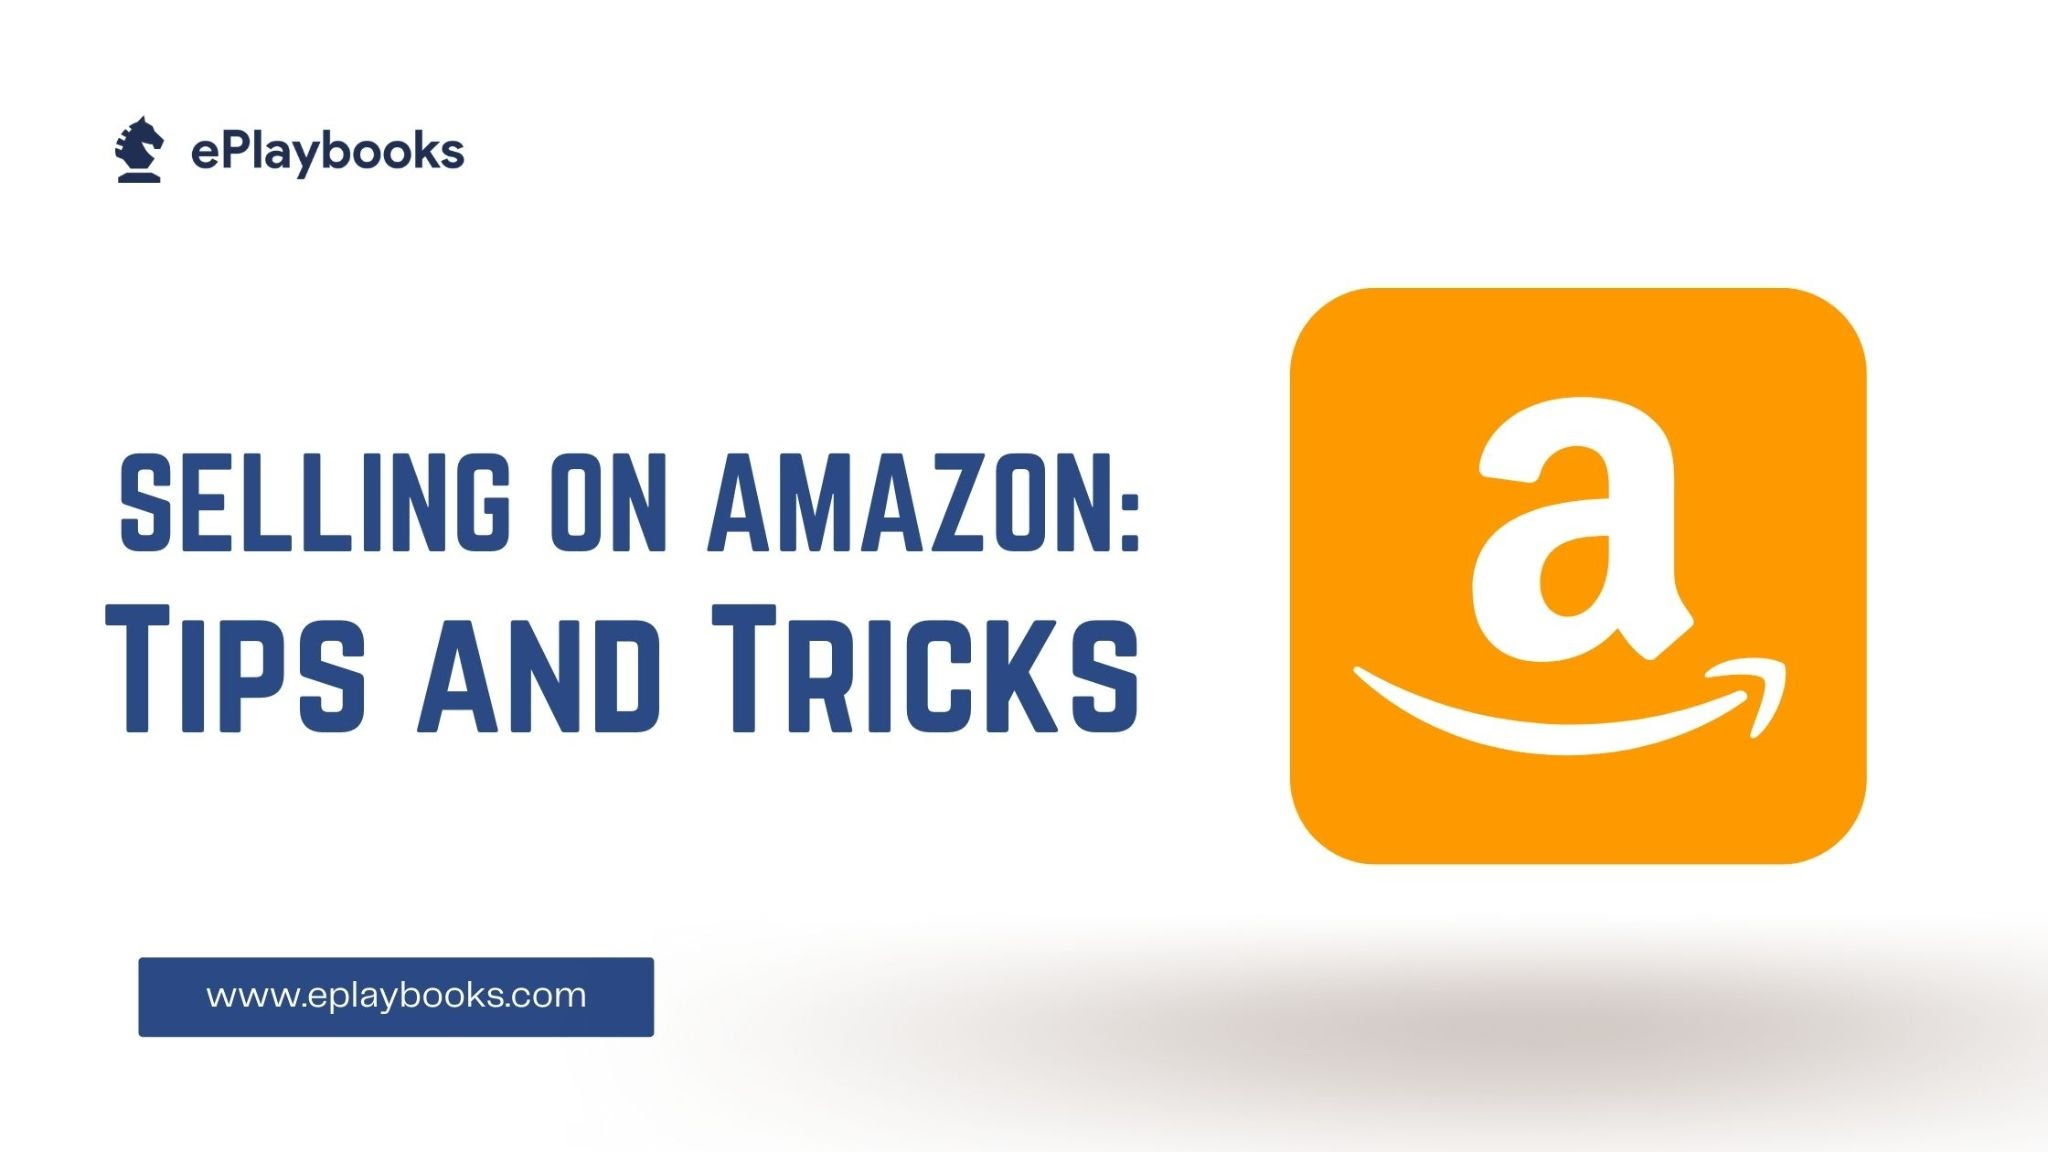 Selling on Amazon: Tips and Tricks